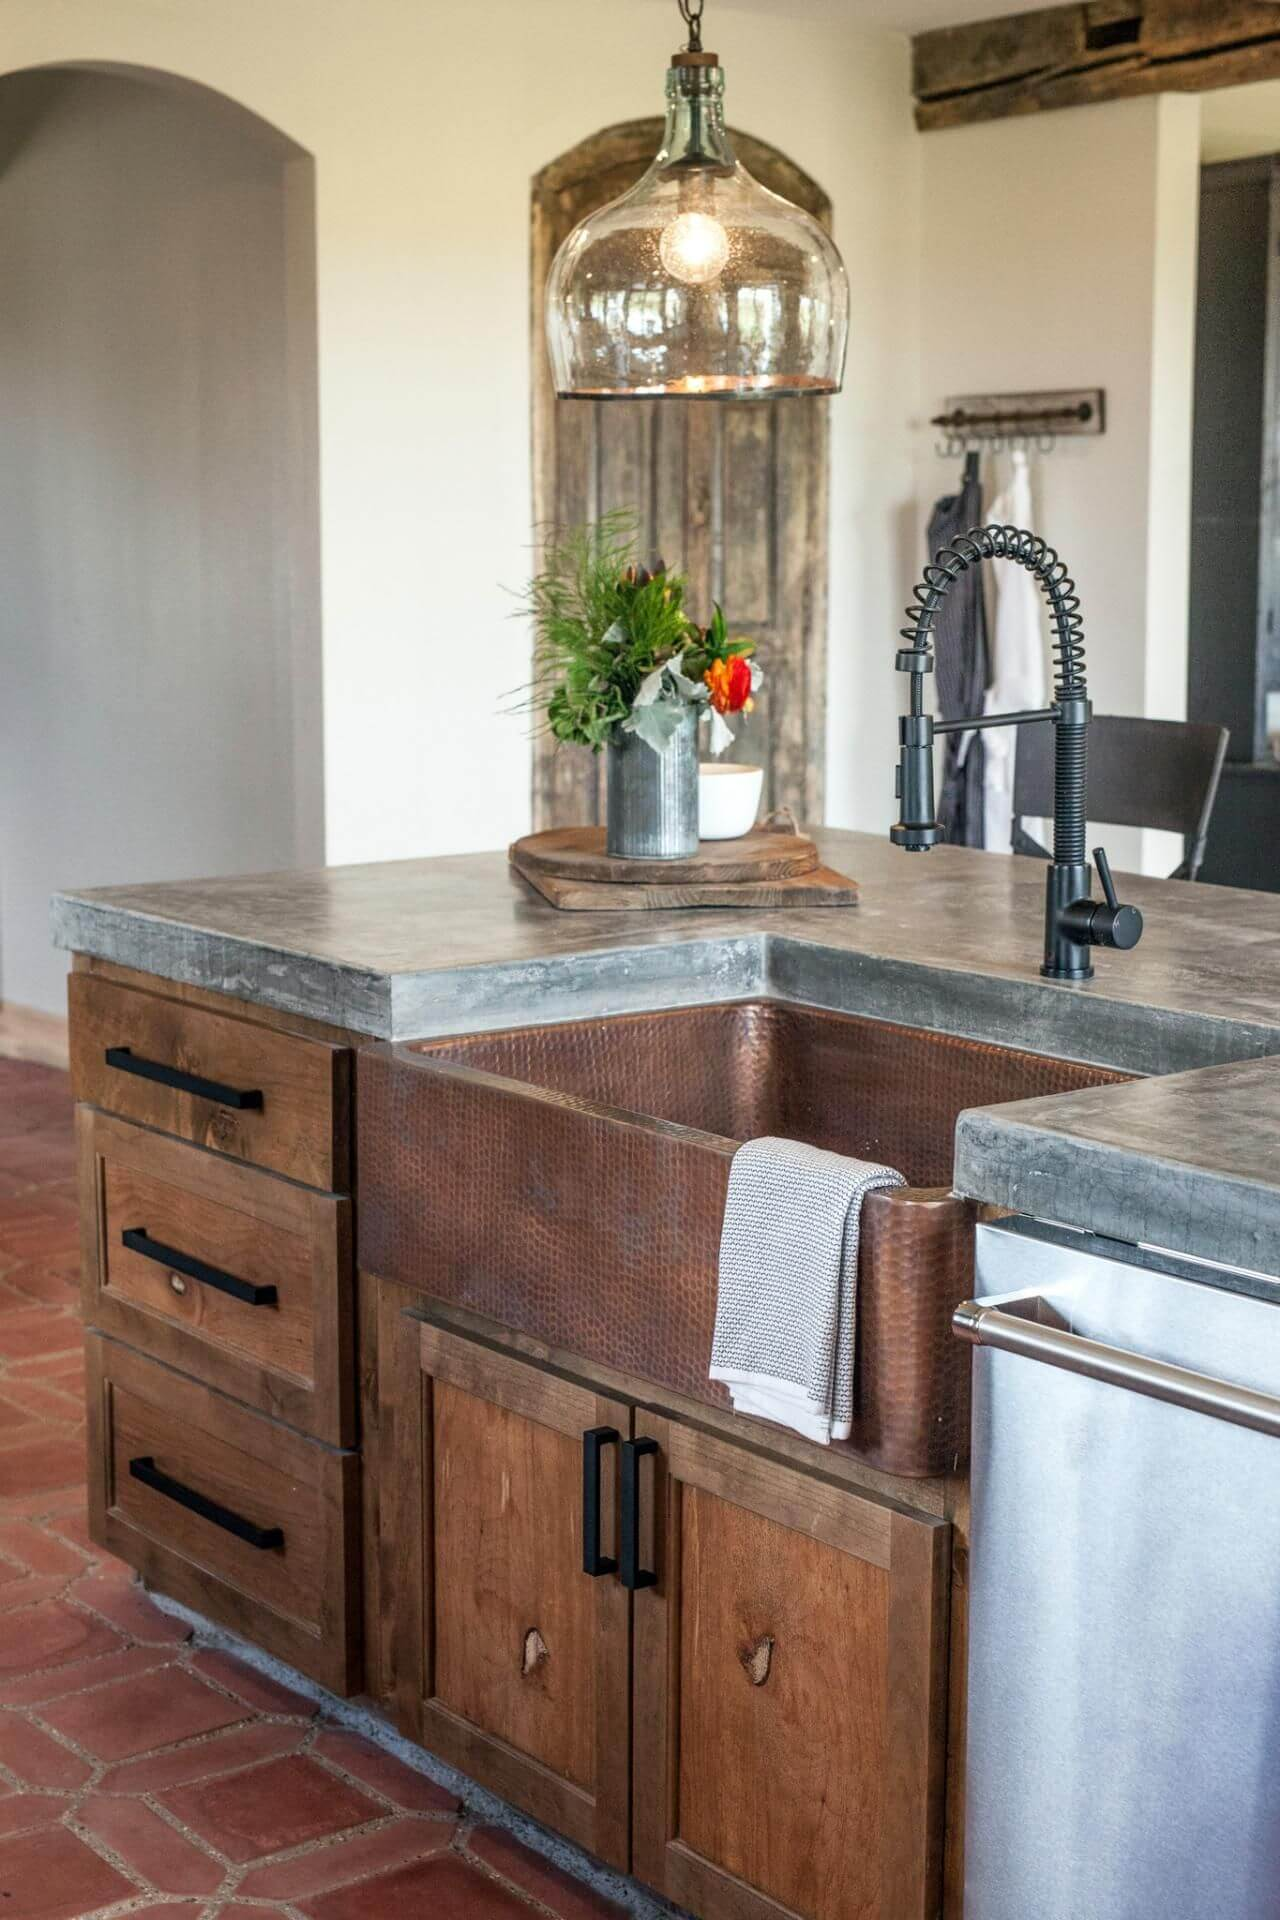 oversized kitchen sinks gray table and chairs 26 farmhouse sink ideas designs for 2019 with sprayer head